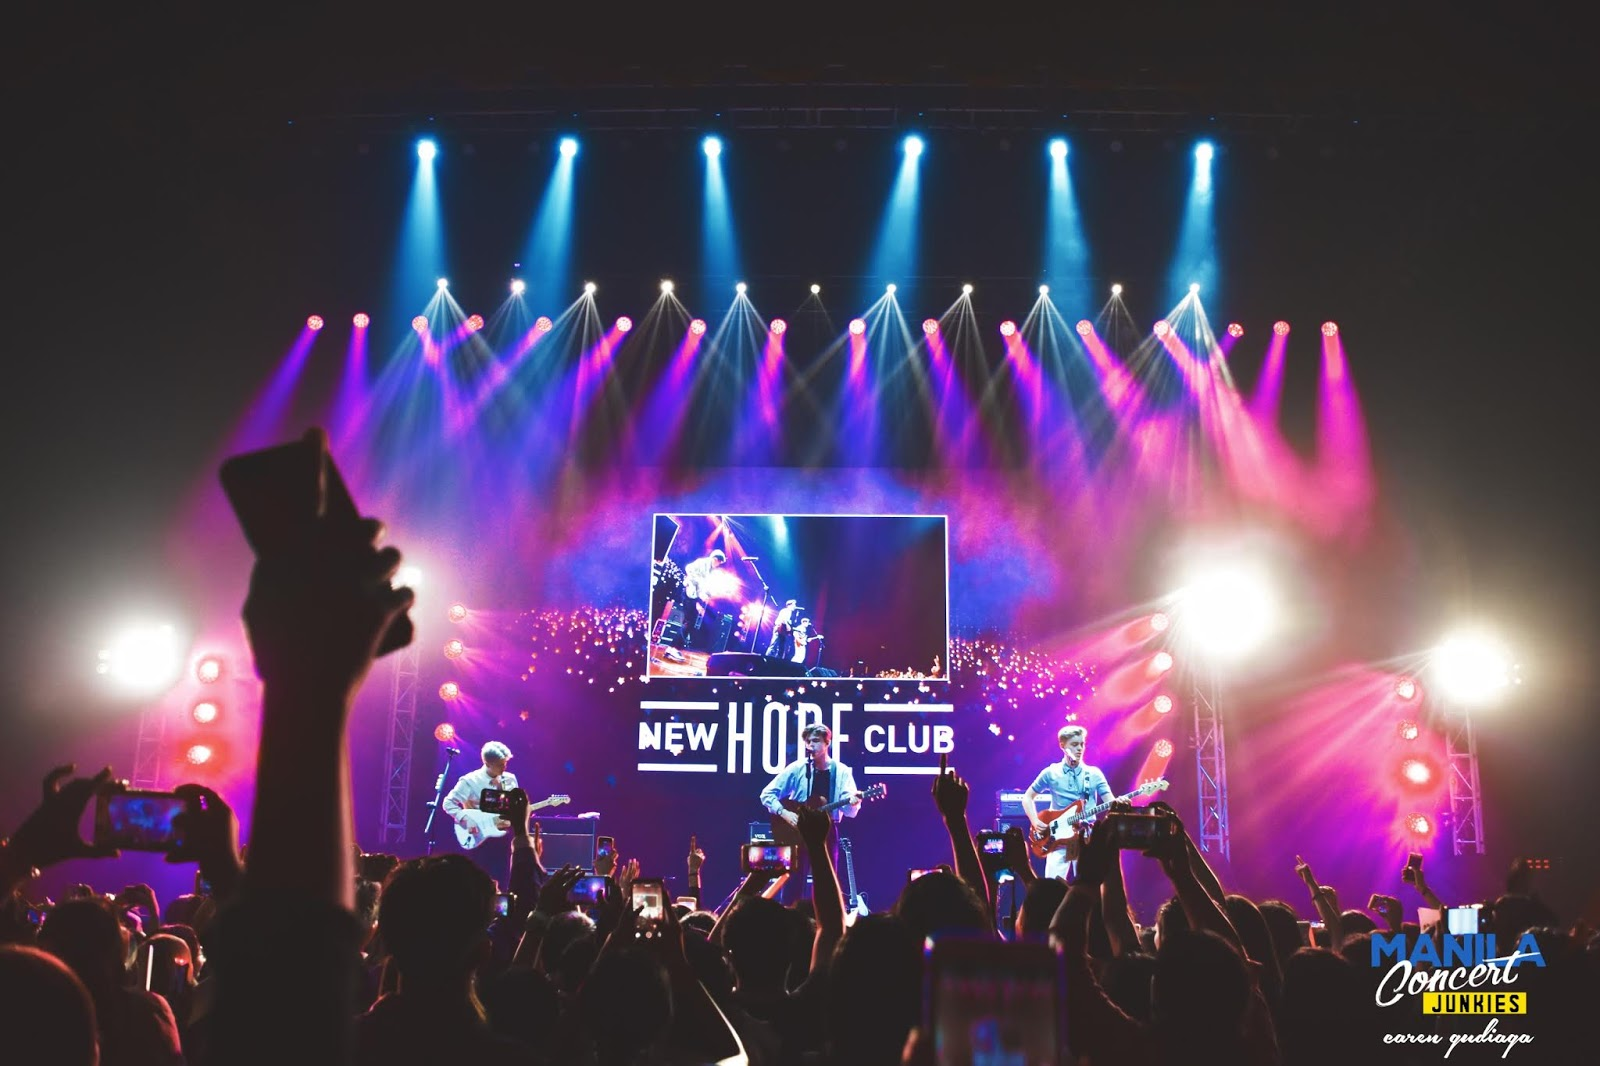 A Youthful Night with New Hope Club | Manila Concert Junkies